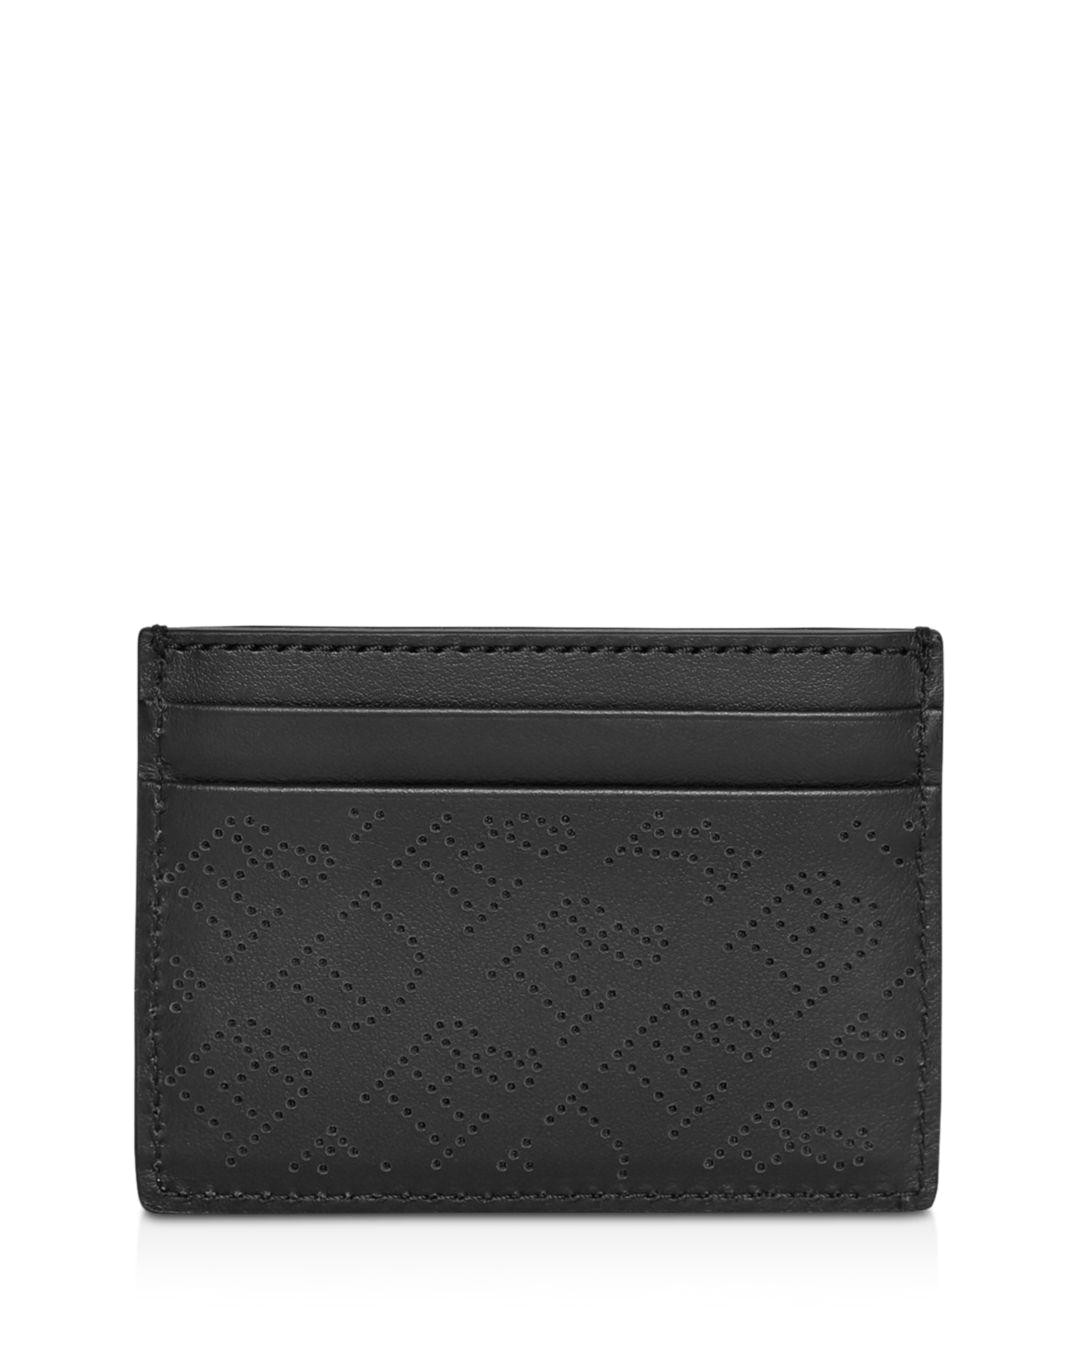 burberry black perforated logo leather card case jpeg